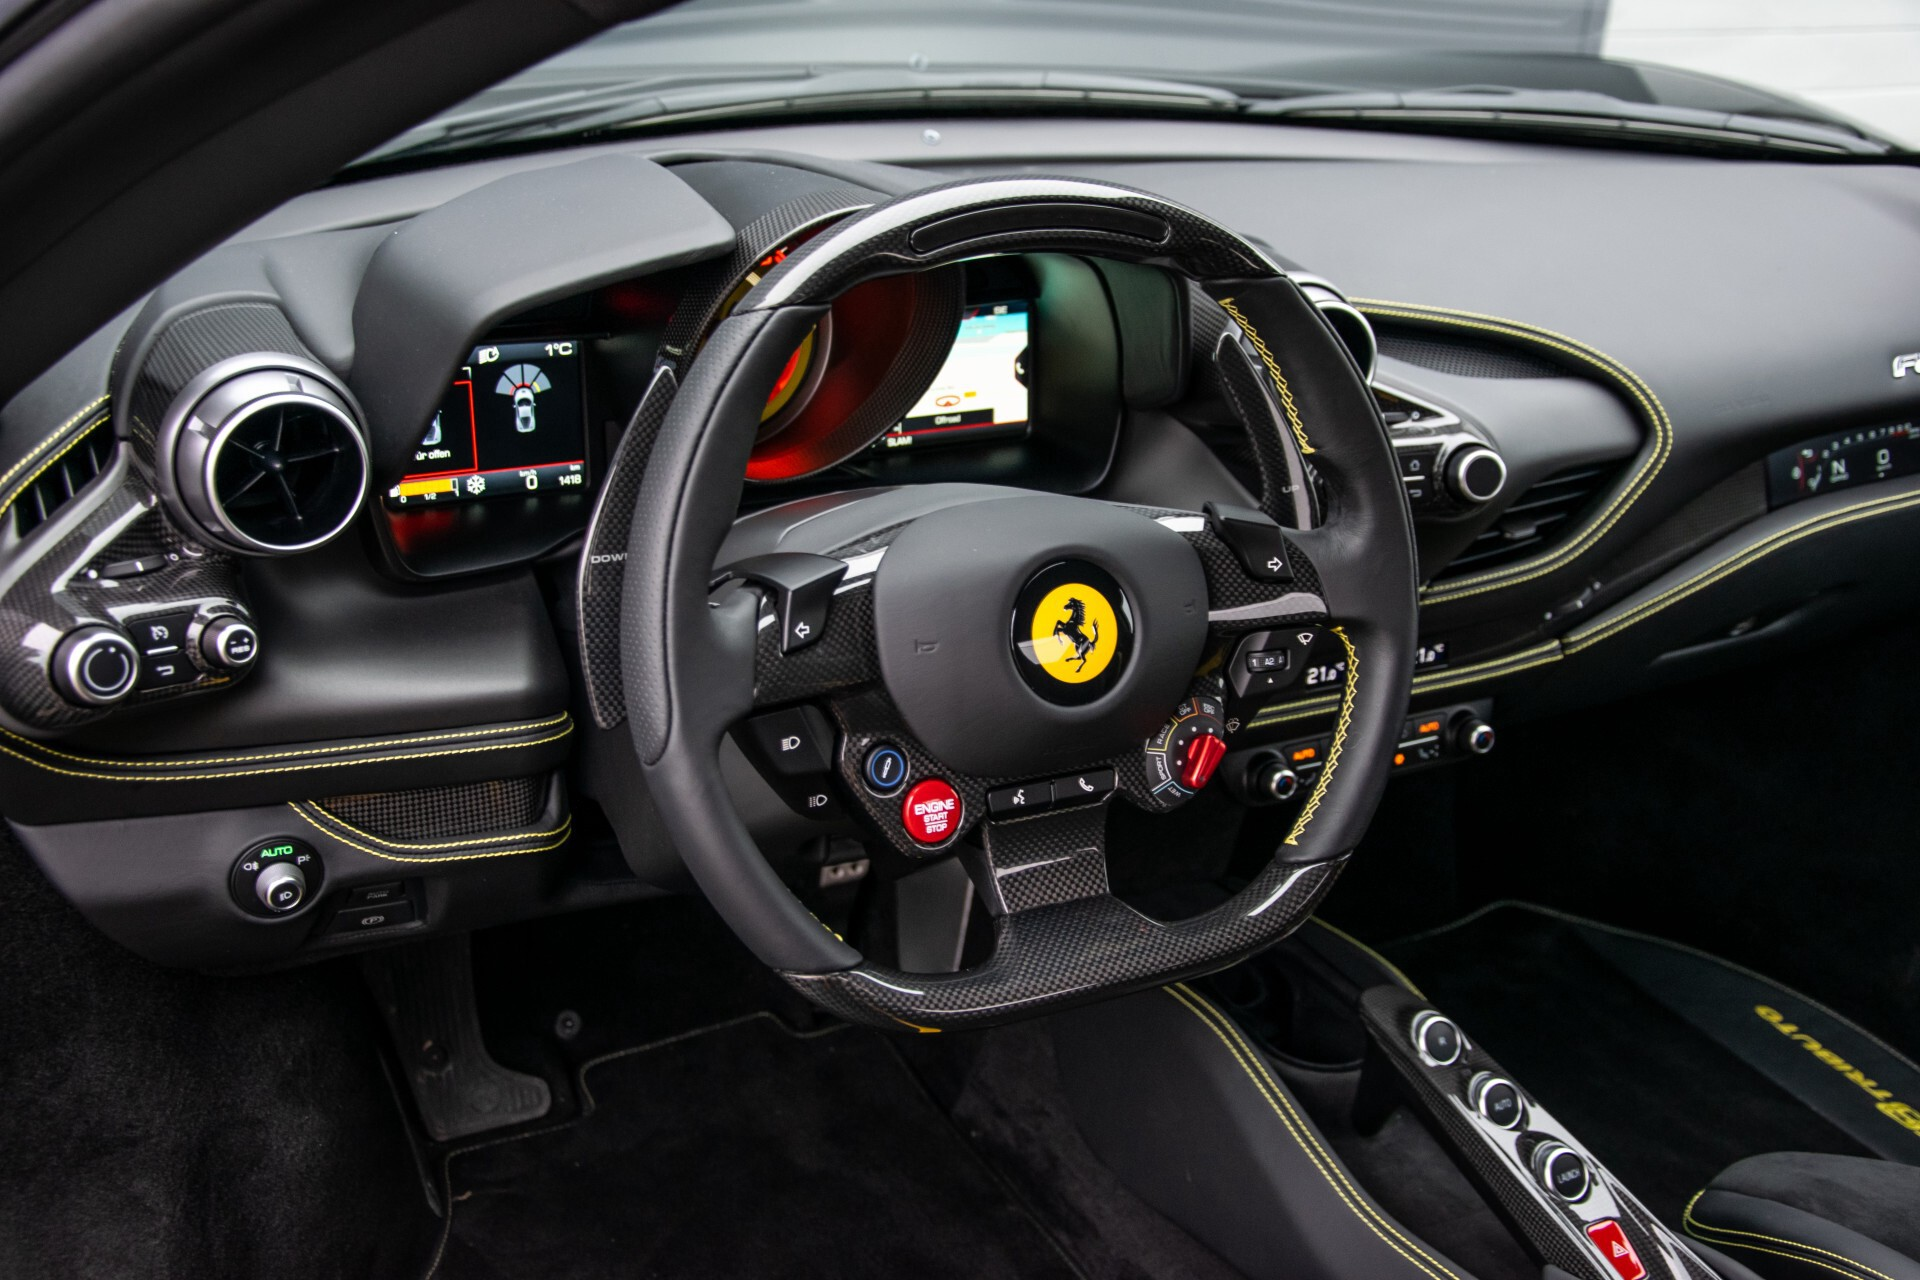 Ferrari F8 Tributo 3.9 V8 HELE Novitech Full Carbon/Lift/Racing Seats/Passenger Display/Hifi Foto 5